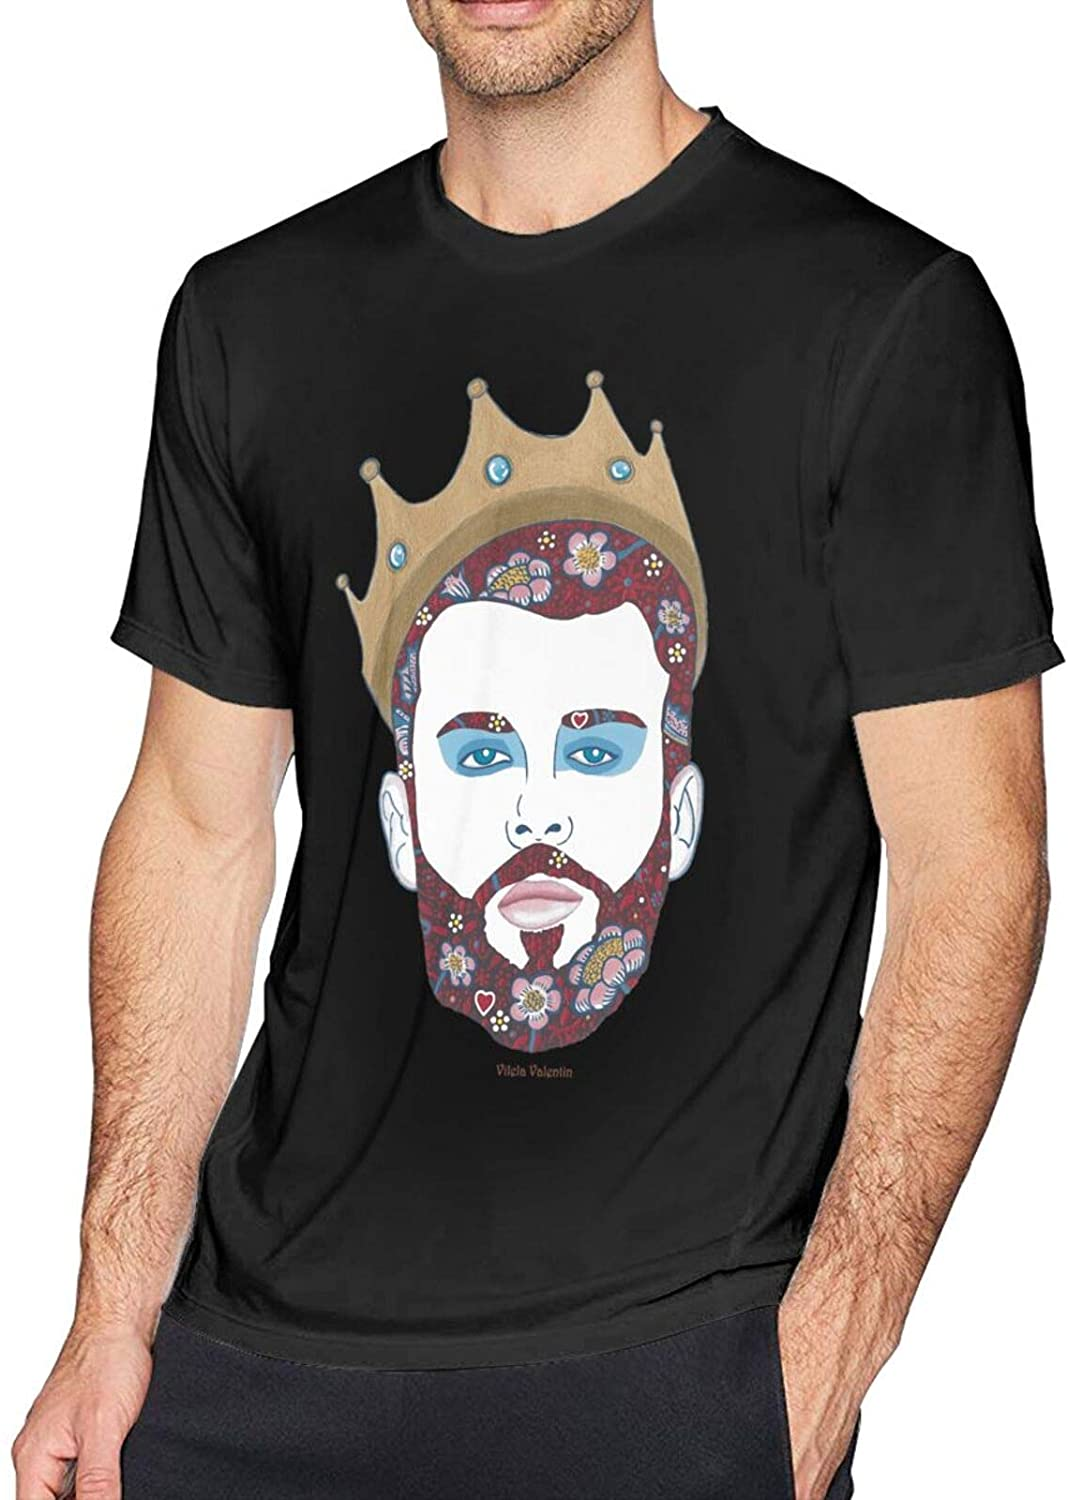 King of Heartsmens Sarcastic Tee Guys Shirt Humorous Graphic Novelty